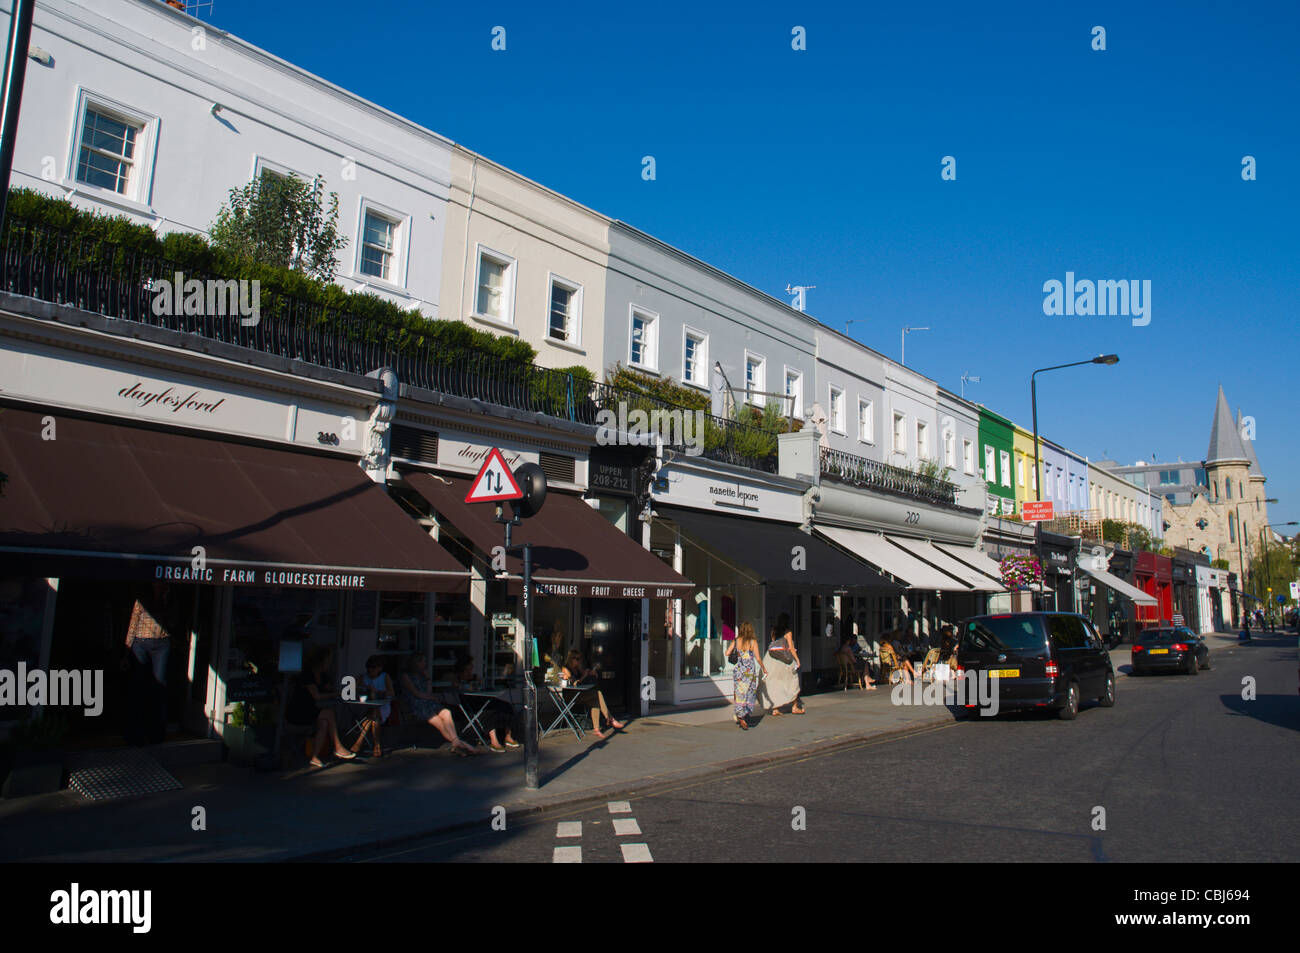 Westbourne Grove street Notting Hill district London England UK Europe Stock Photo